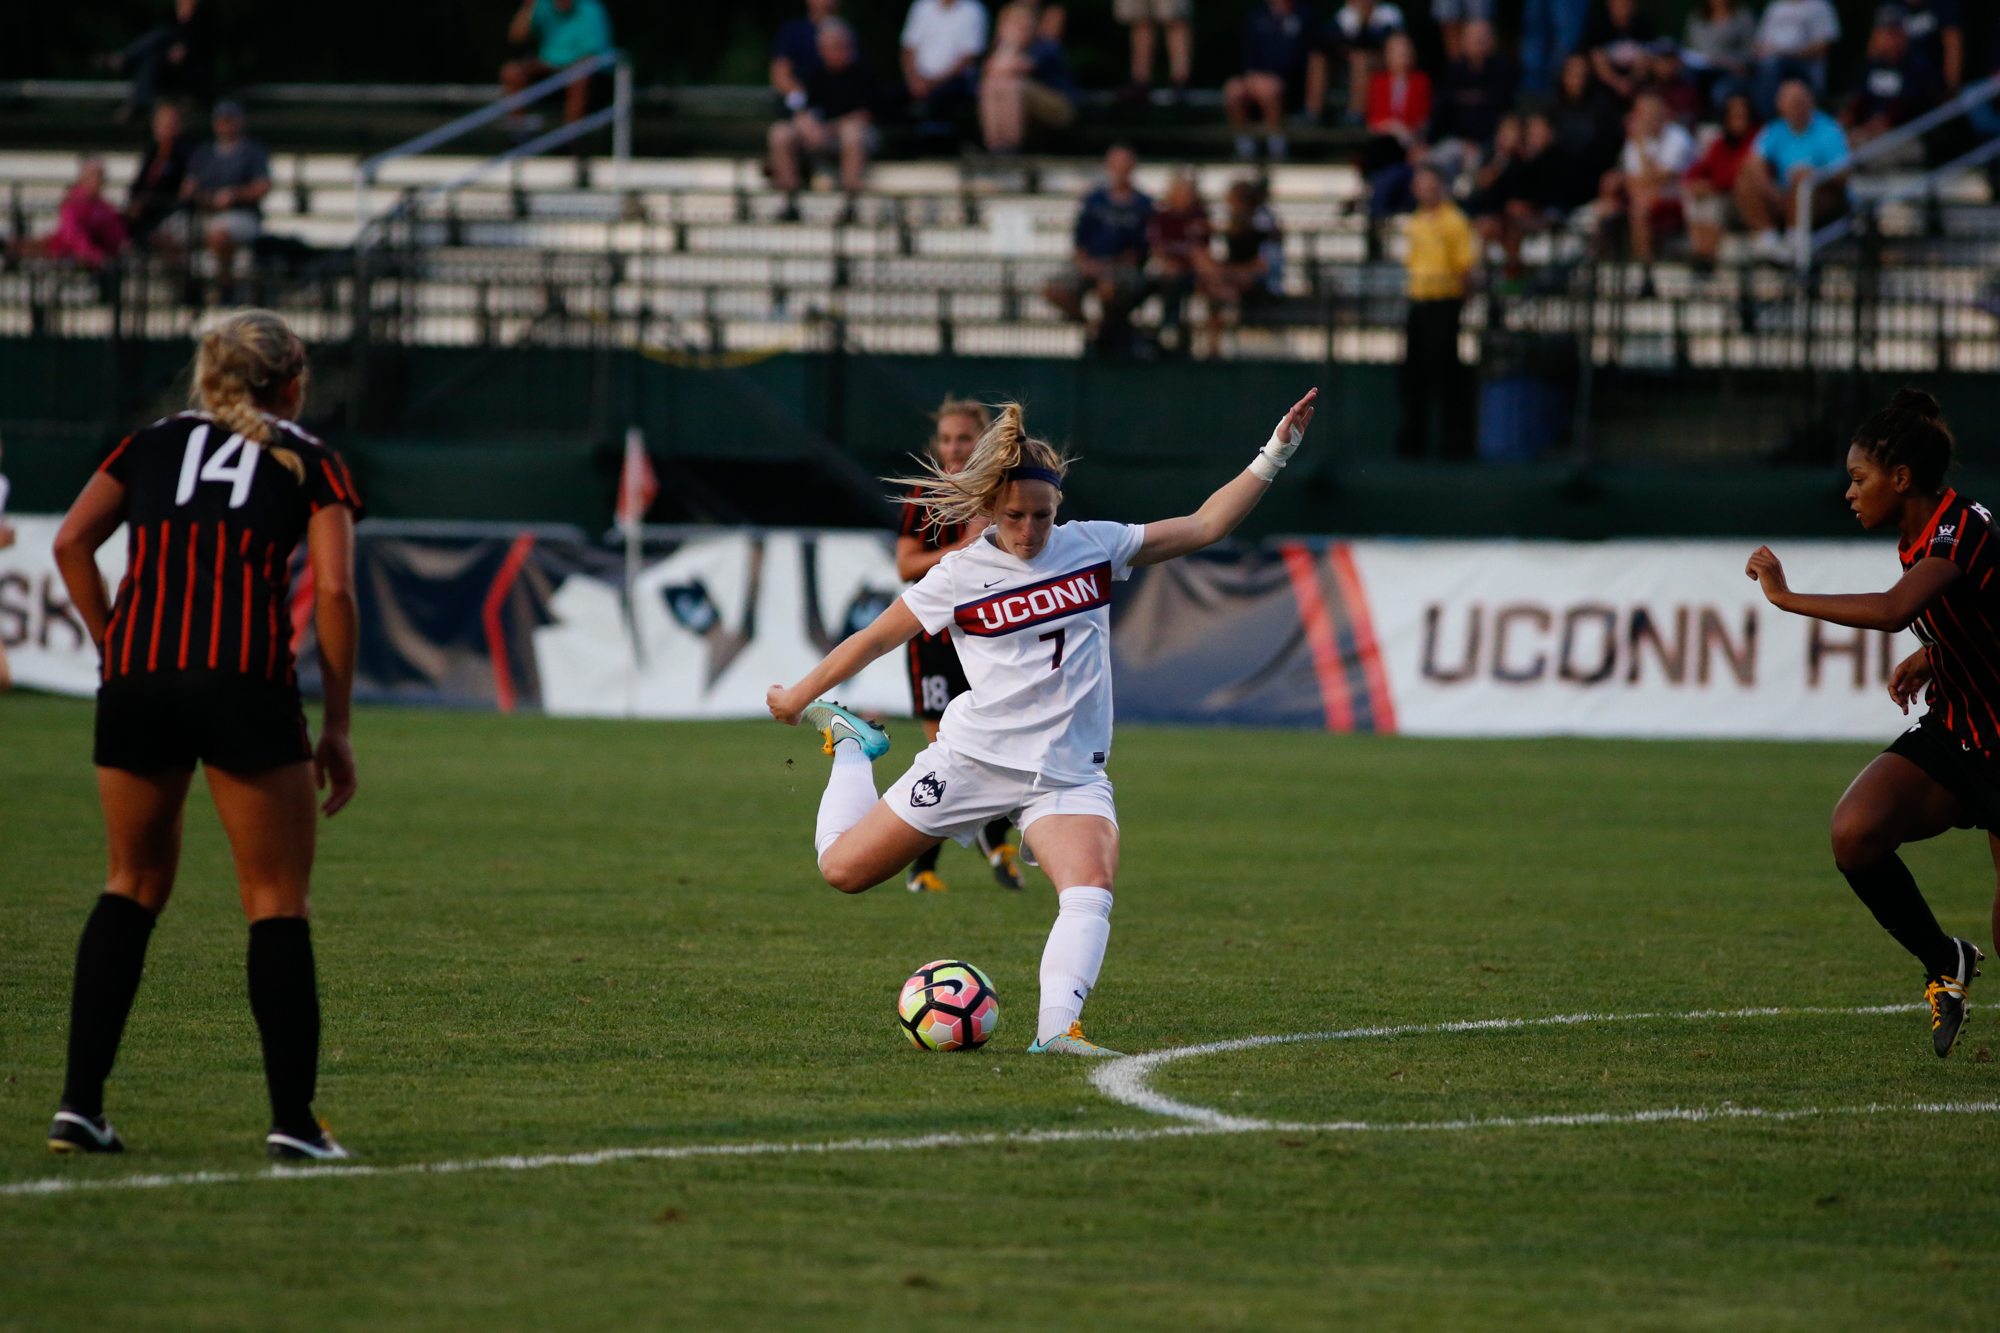 Senior forward Maddie Dam lines up a shot during the Huskies 1-0 victory over Pacific on Saturday, Sept. 2. The Huskies will host Stony Brook at Morrone Stadium on Sunday, Sept. 11.